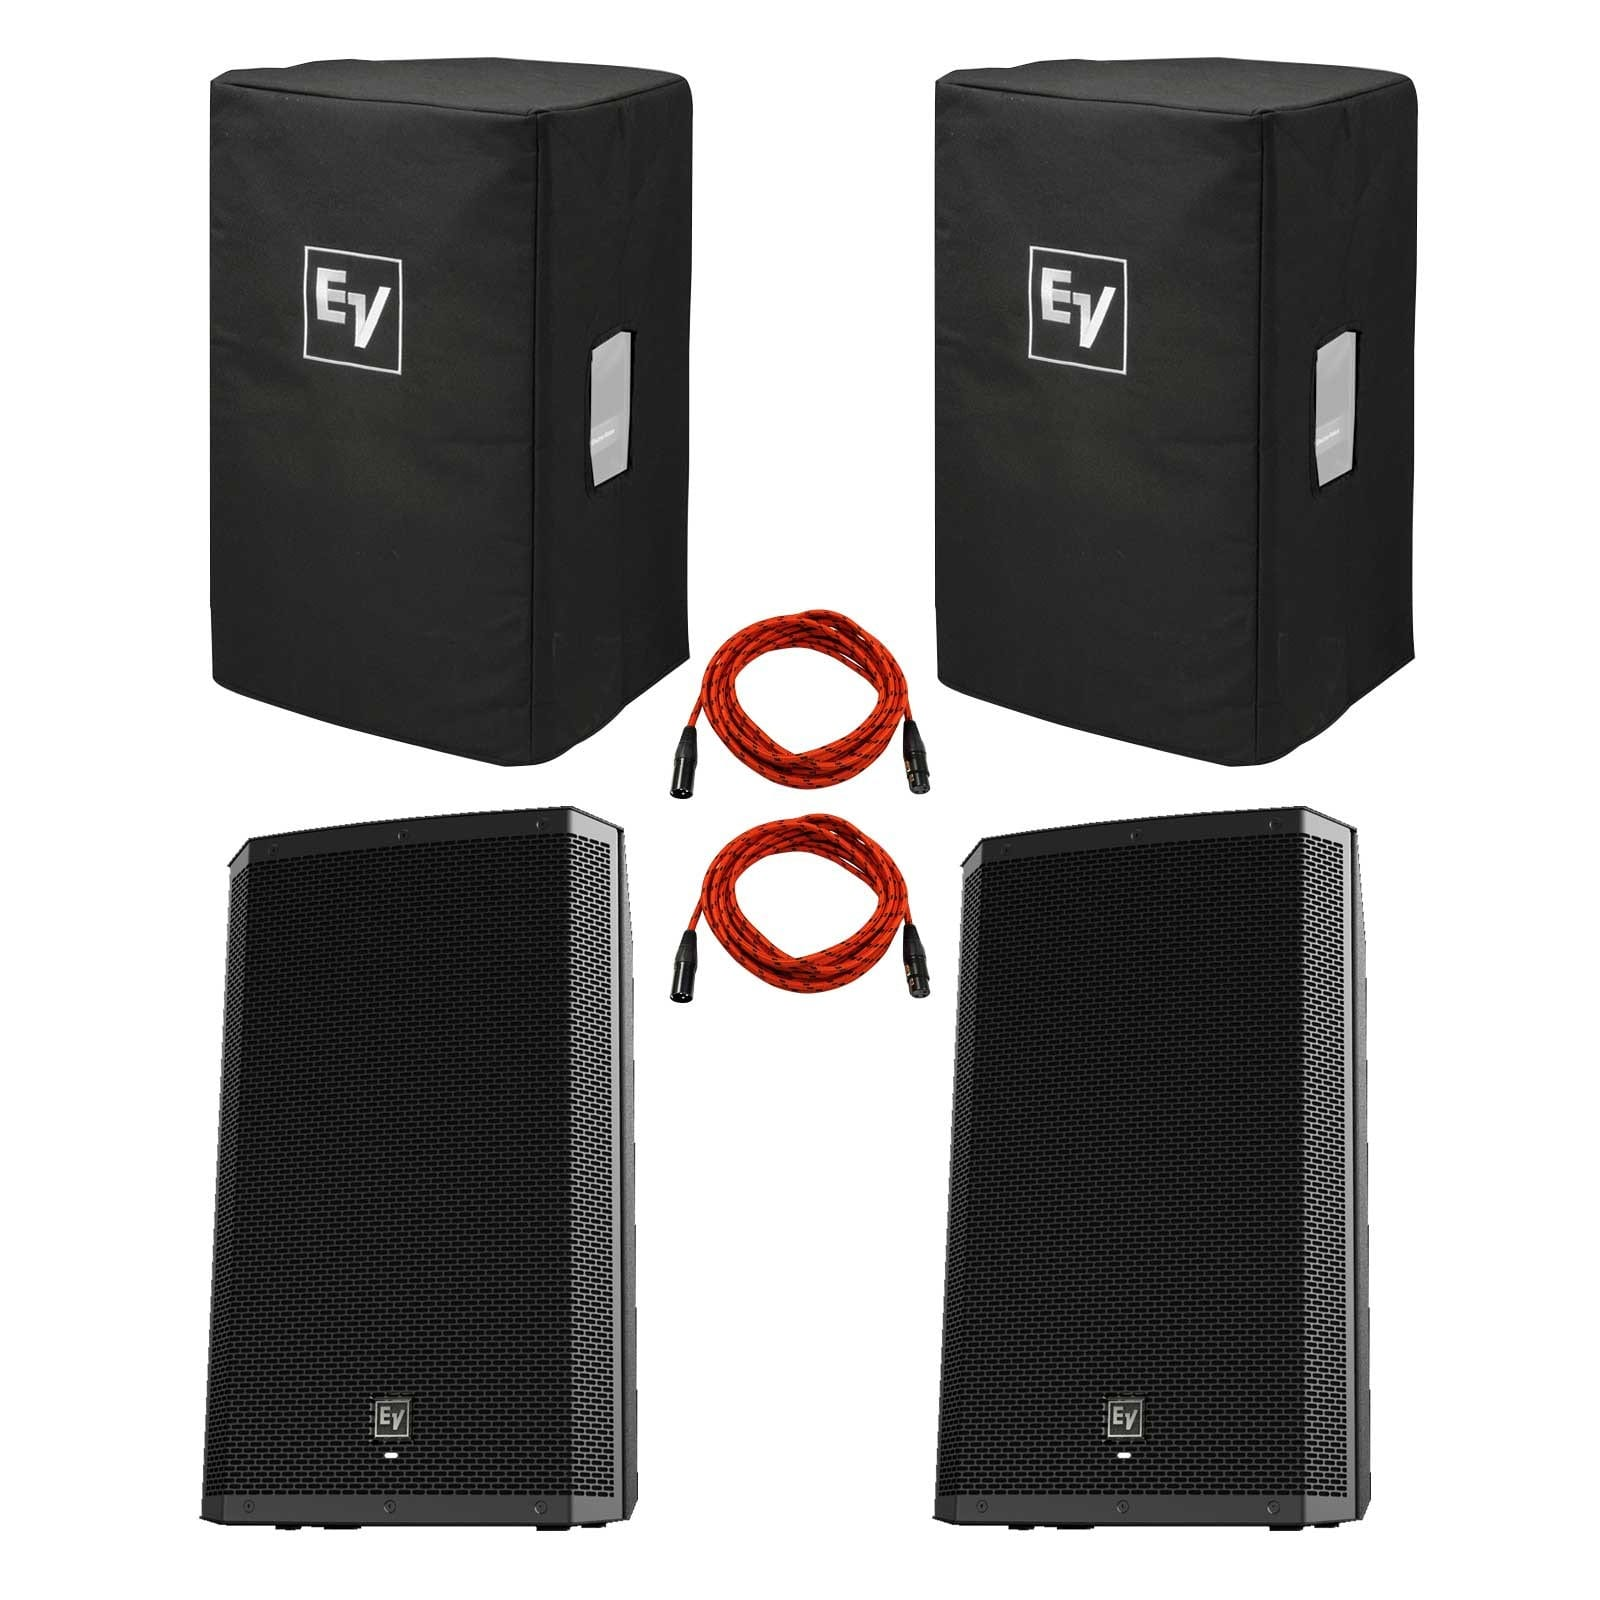 2-electro-voice-zlx-15p-15-powered-loudspeakers-packaged-with-covers-and-red-xlr-connecting-cables-0